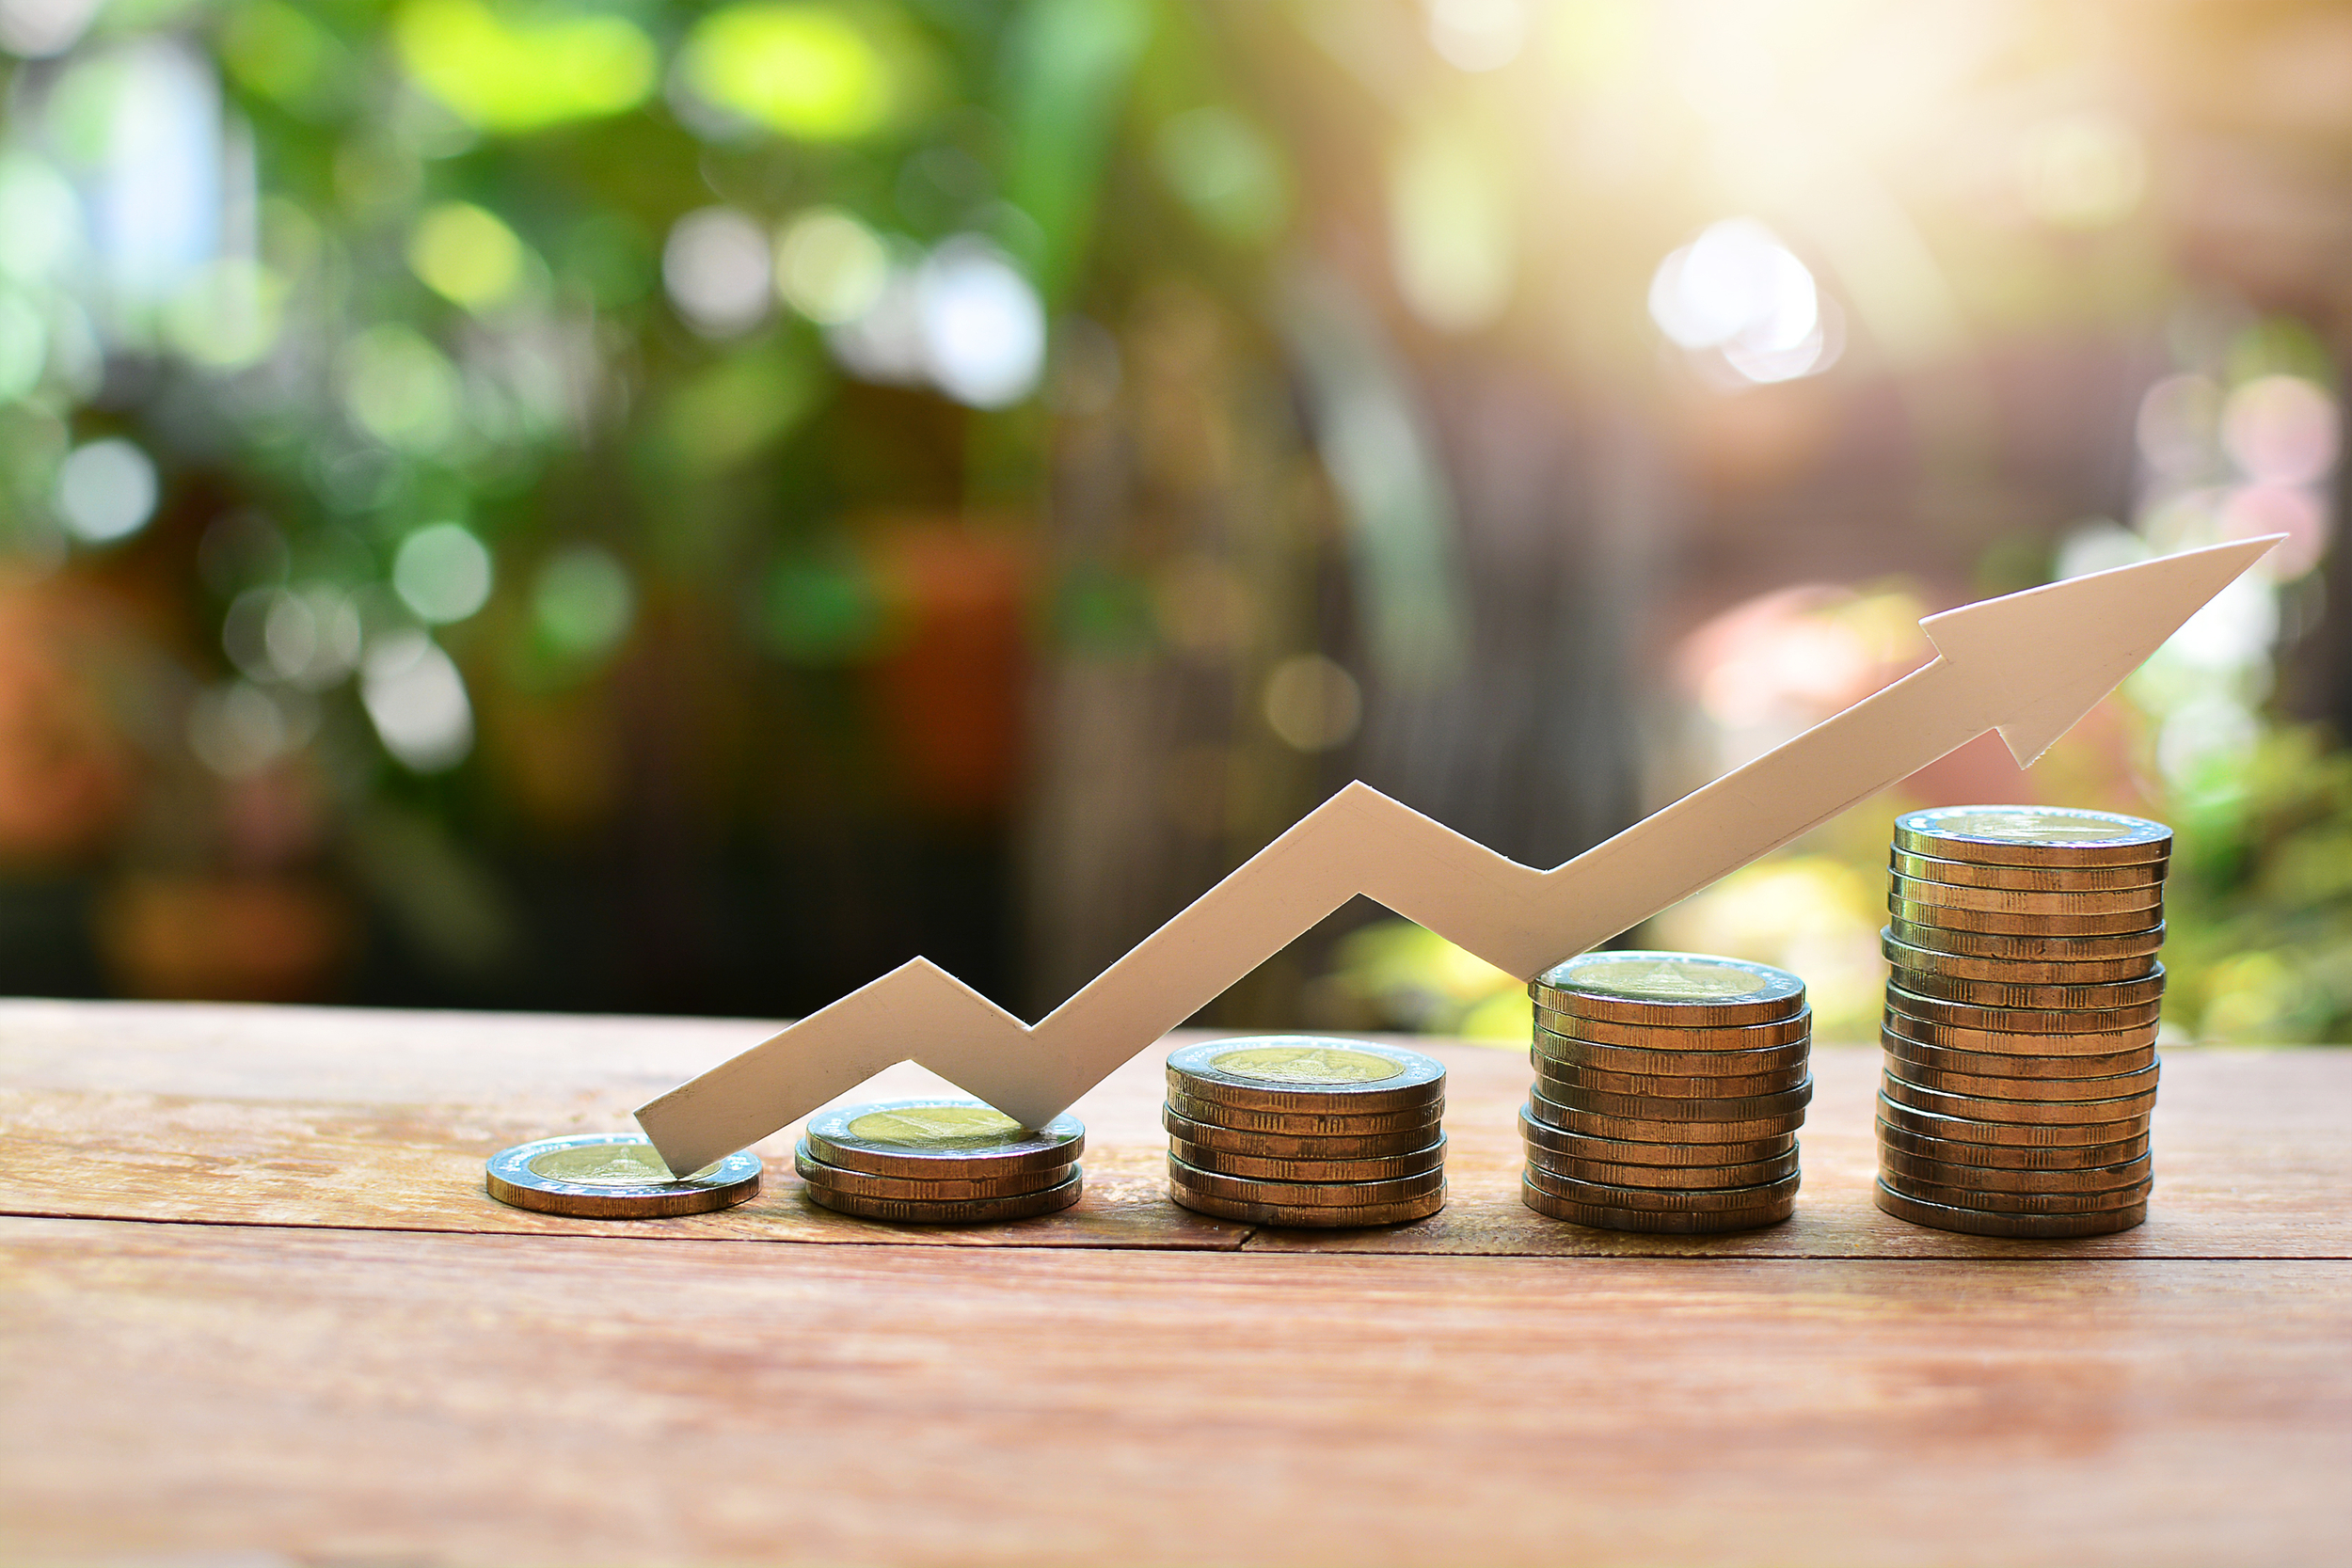 Why Investors should avoid chasing the latest investment trend